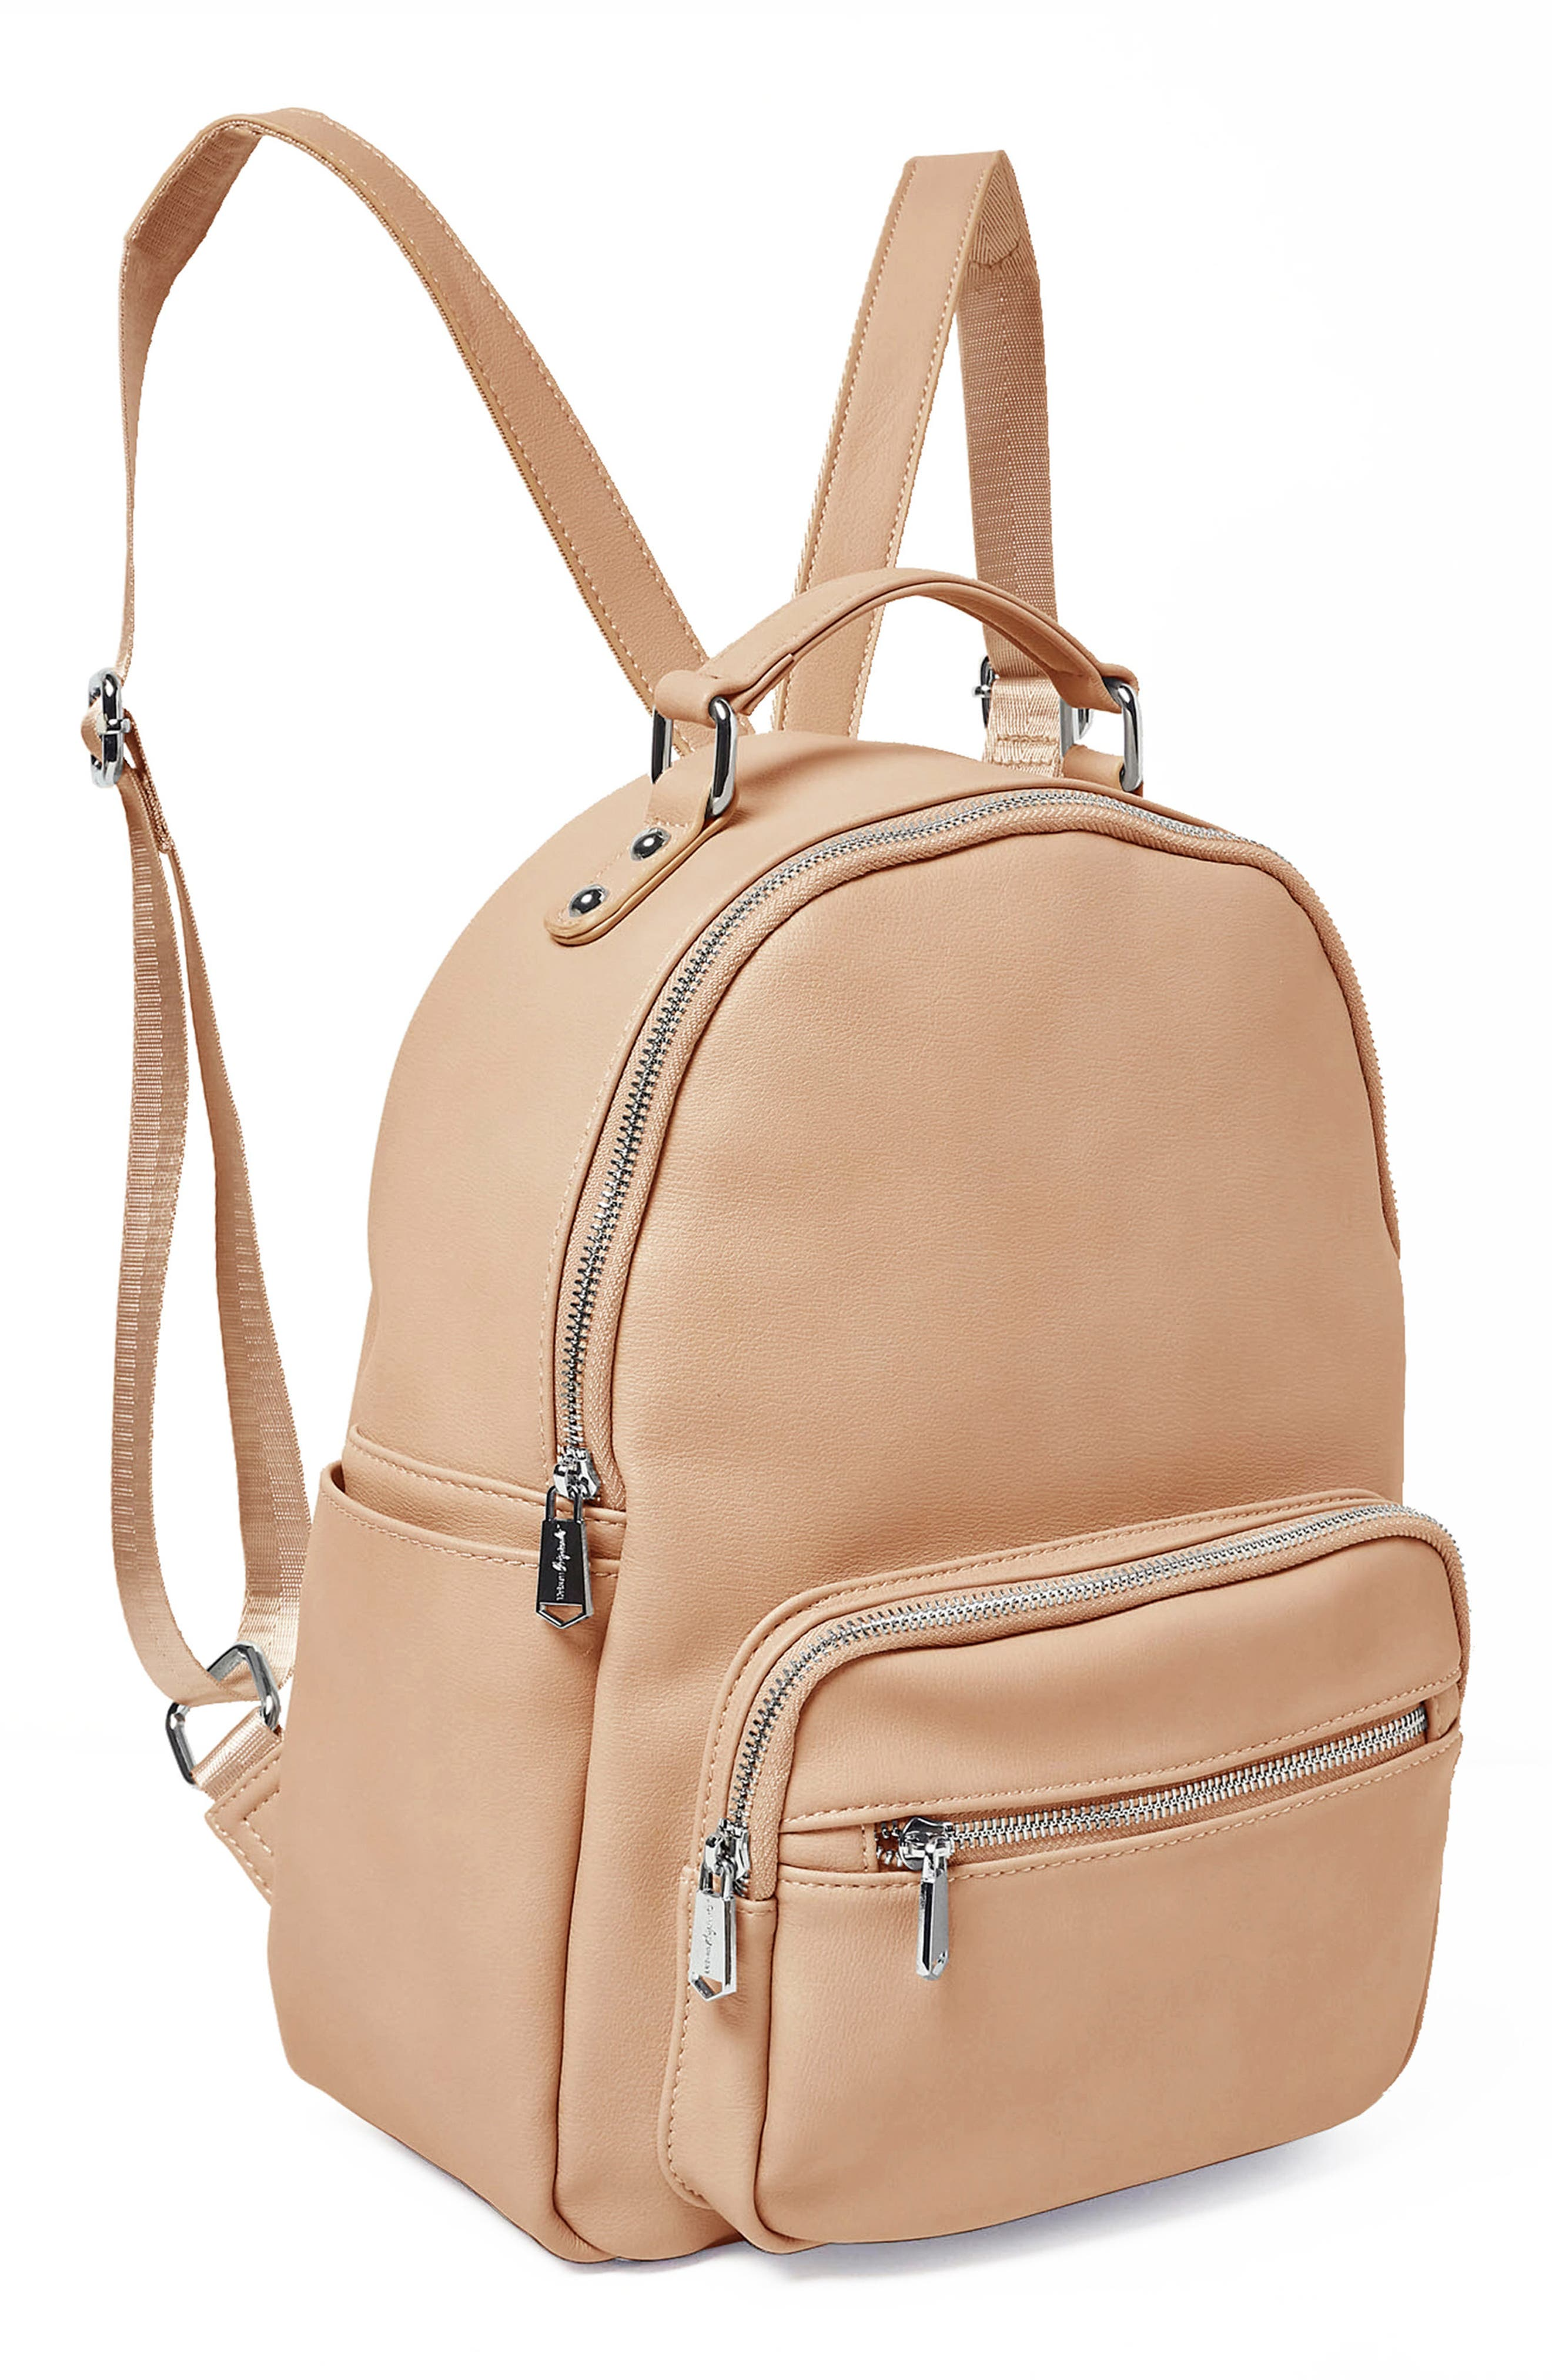 On My Own Vegan Leather Backpack,                             Alternate thumbnail 4, color,                             NUDE